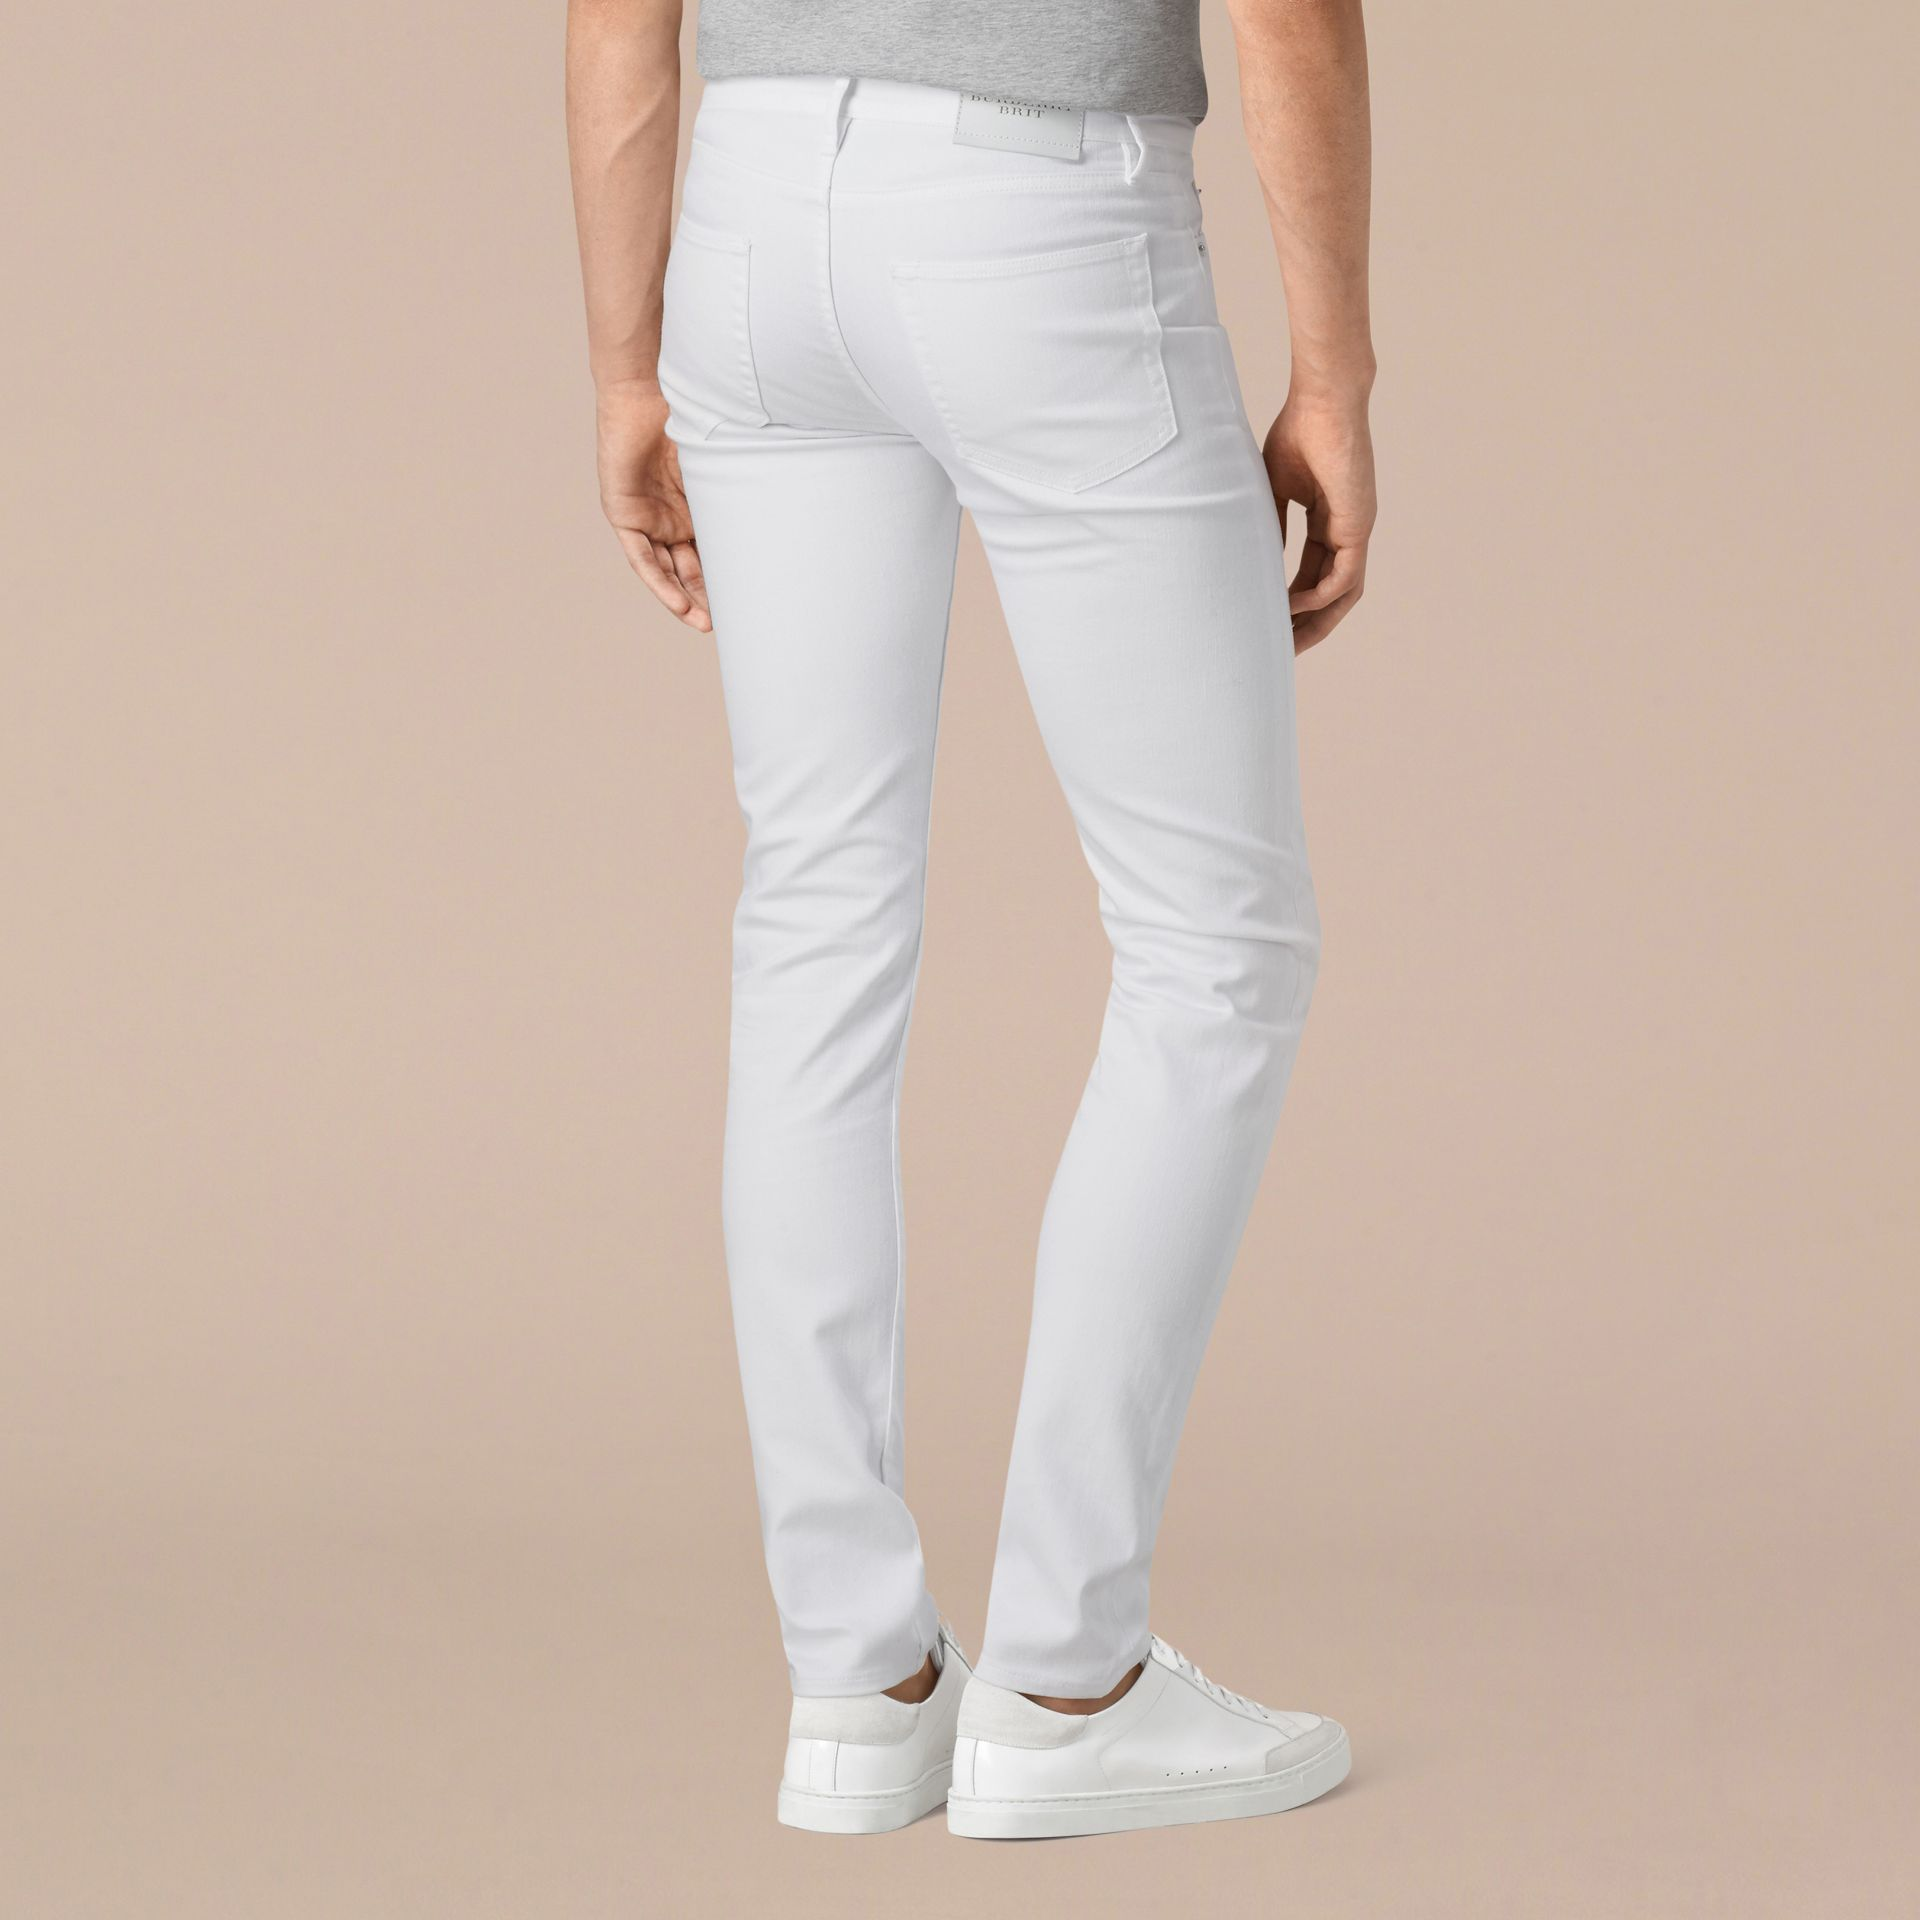 Blanc Jean slim stretch en denim japonais - photo de la galerie 3